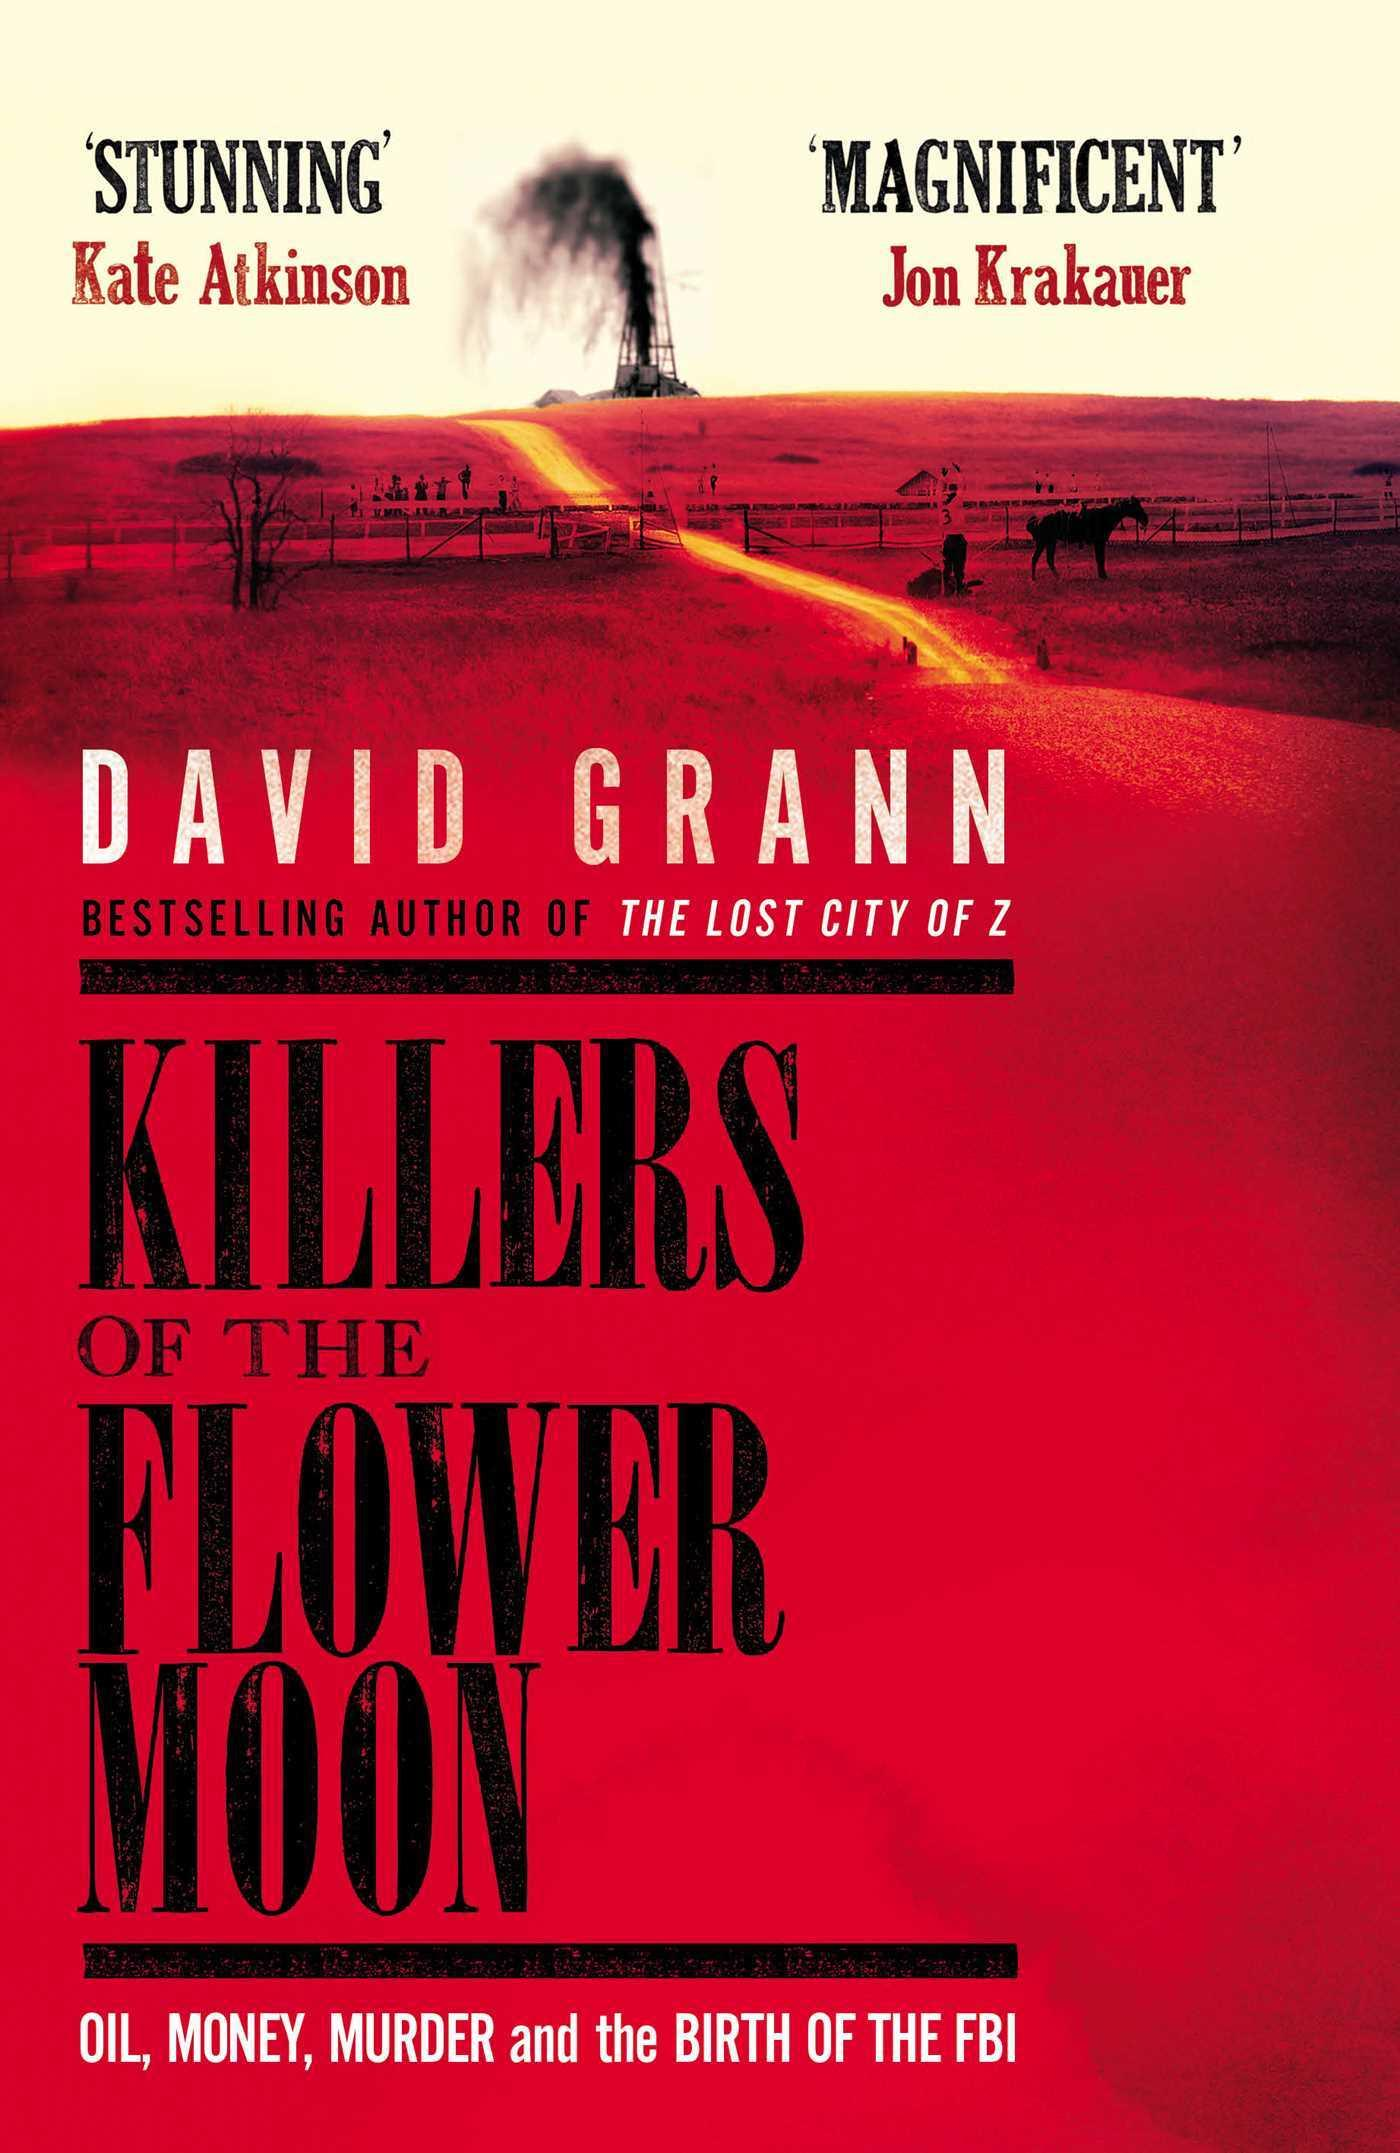 Killers of the Flower Moon: Oil, Money, Murder and the Birth of the FBI